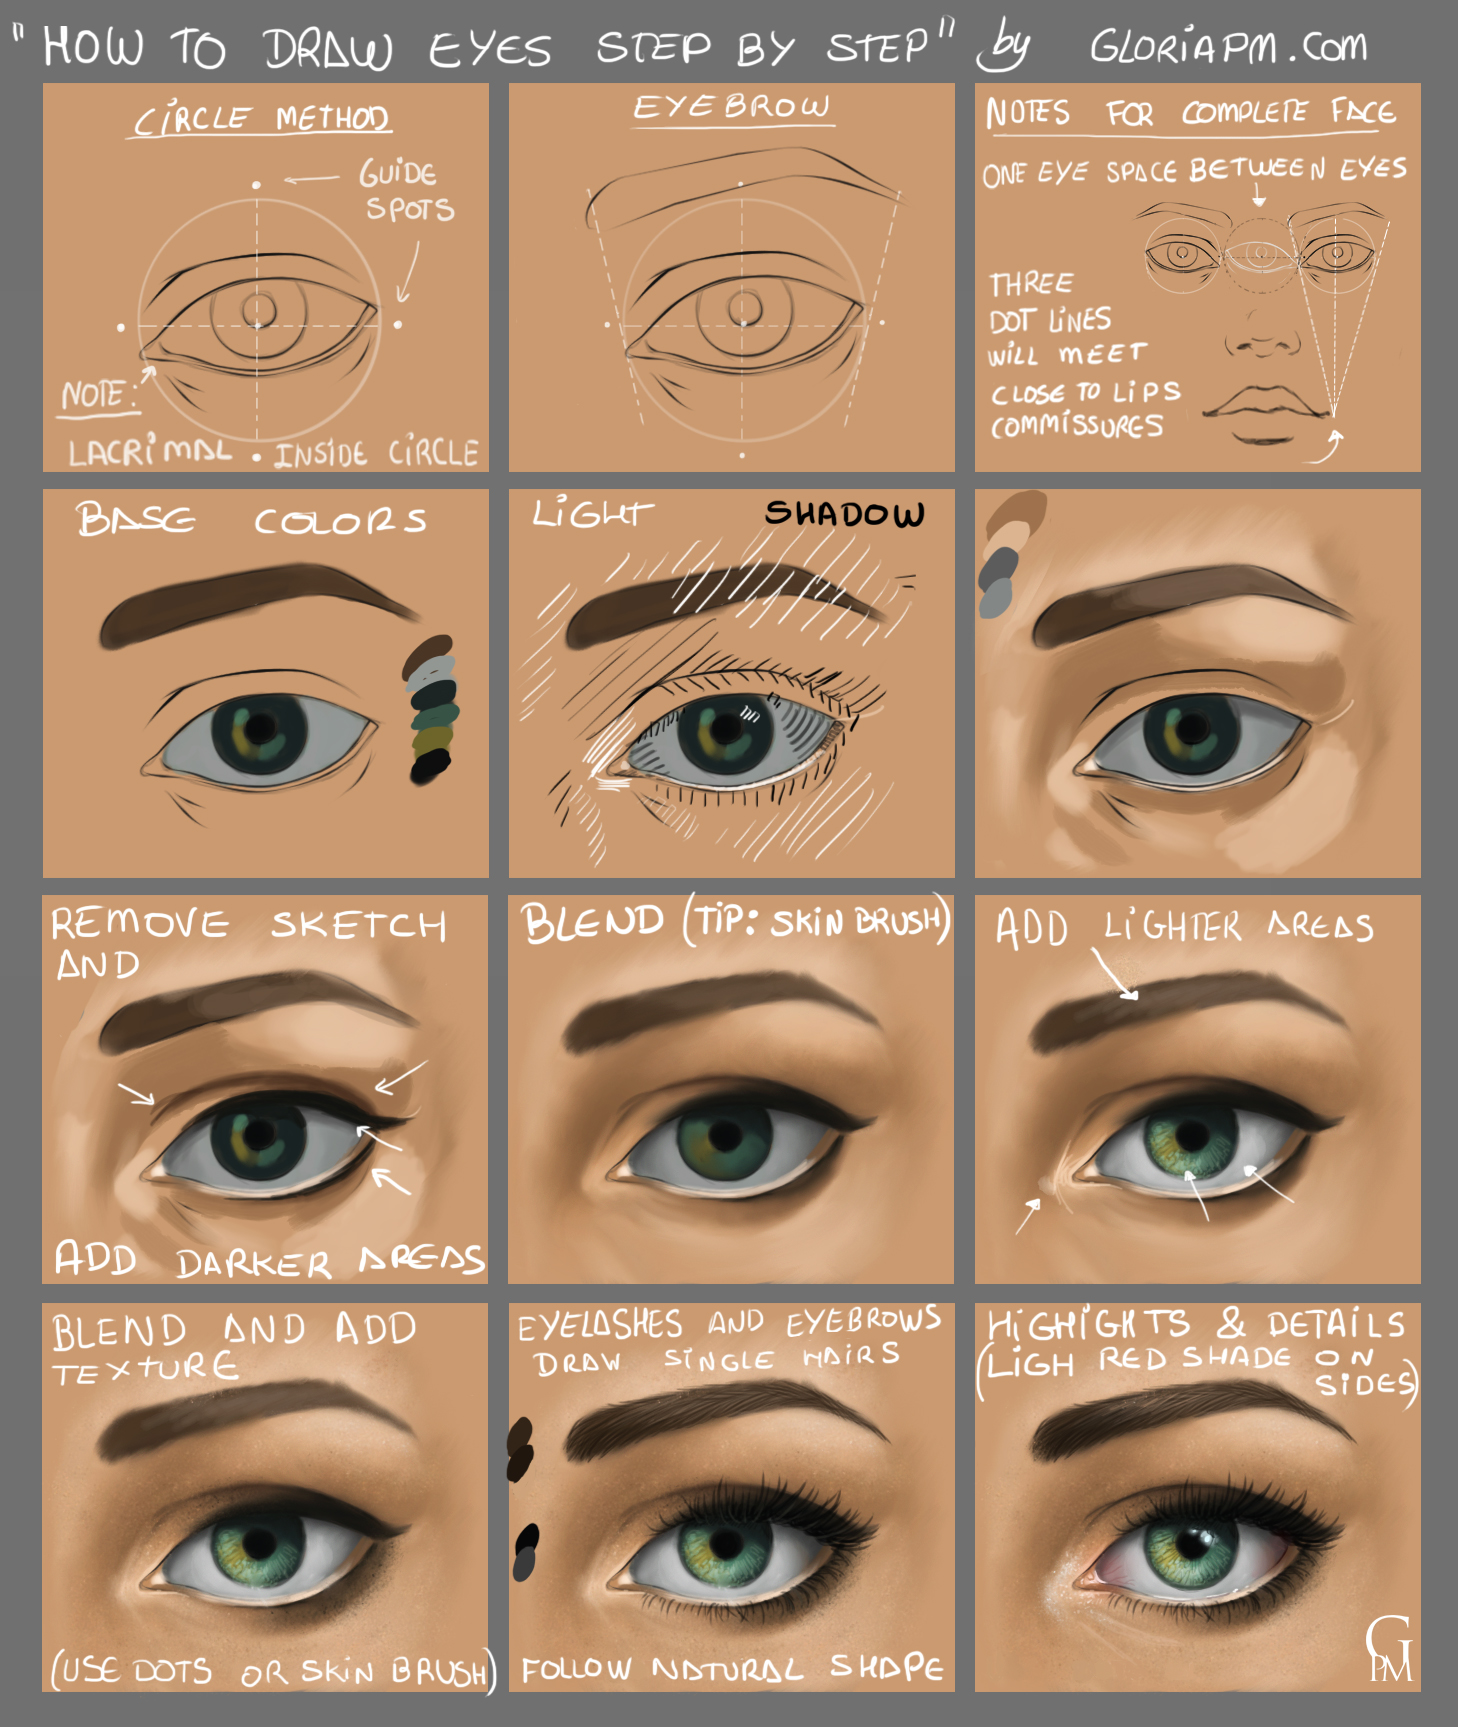 How To Draw Eyes Step By Step Gloriapm